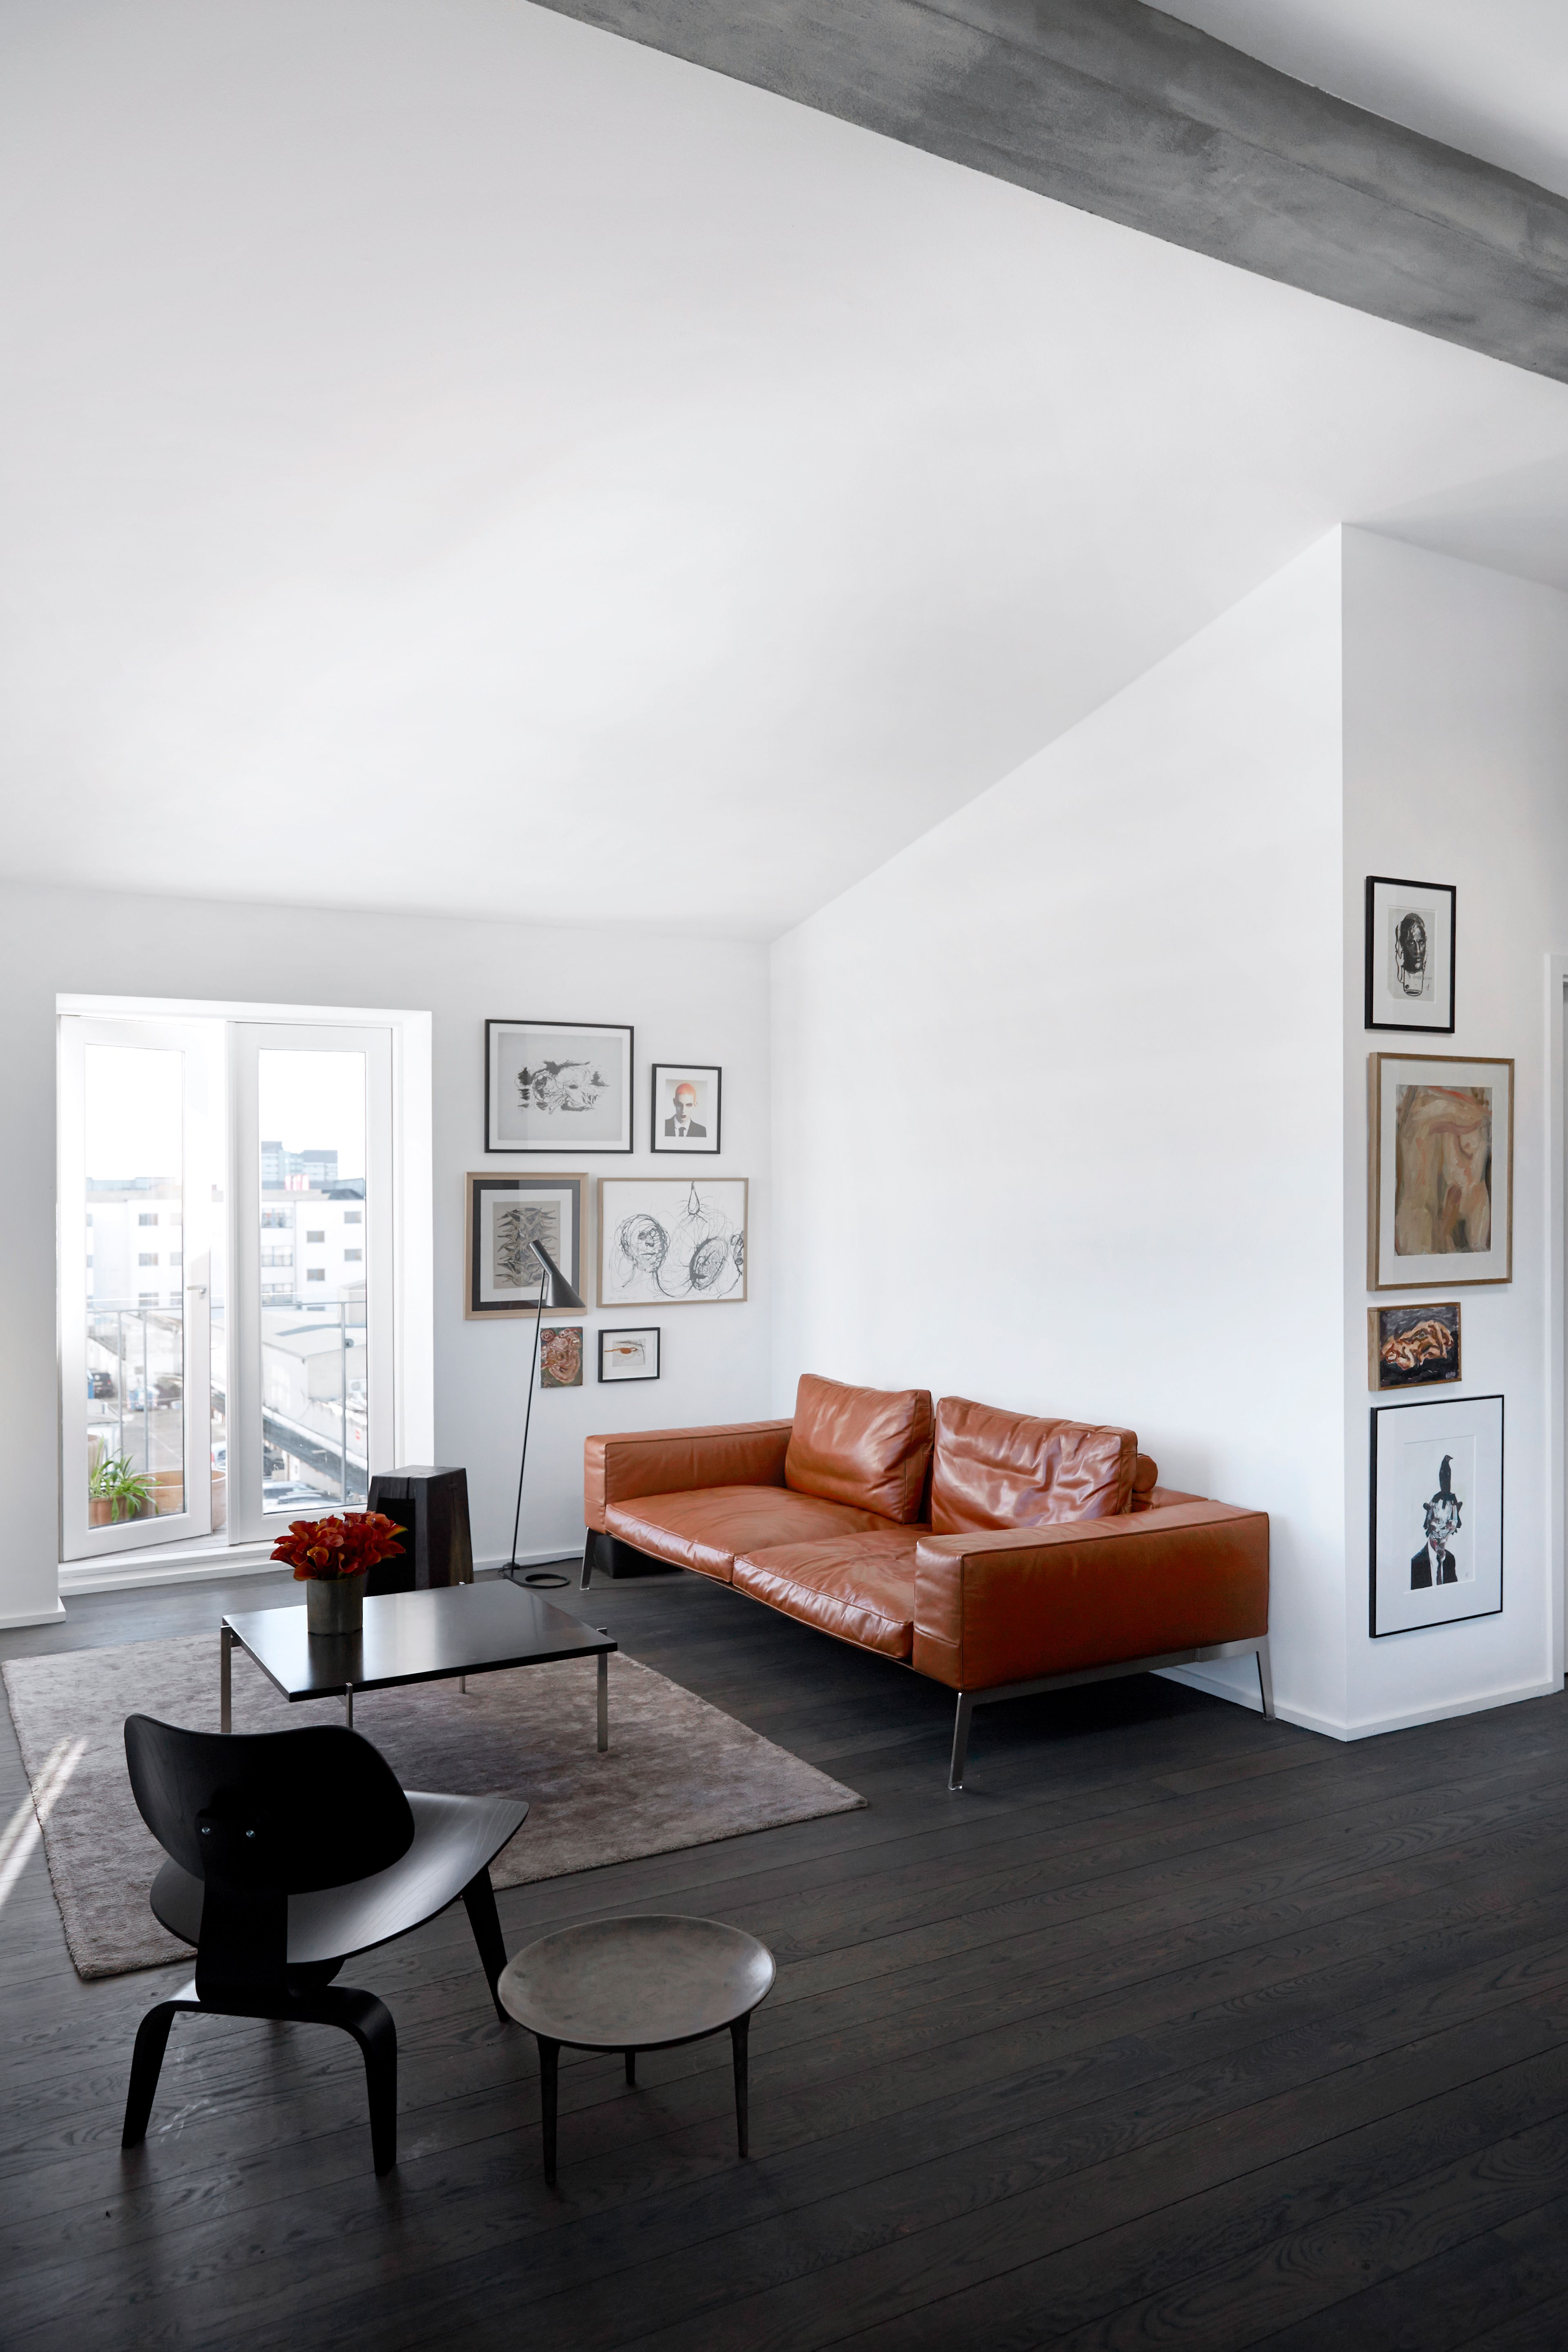 expanded image | Interior | Pinterest | Interiors, Living rooms and Room